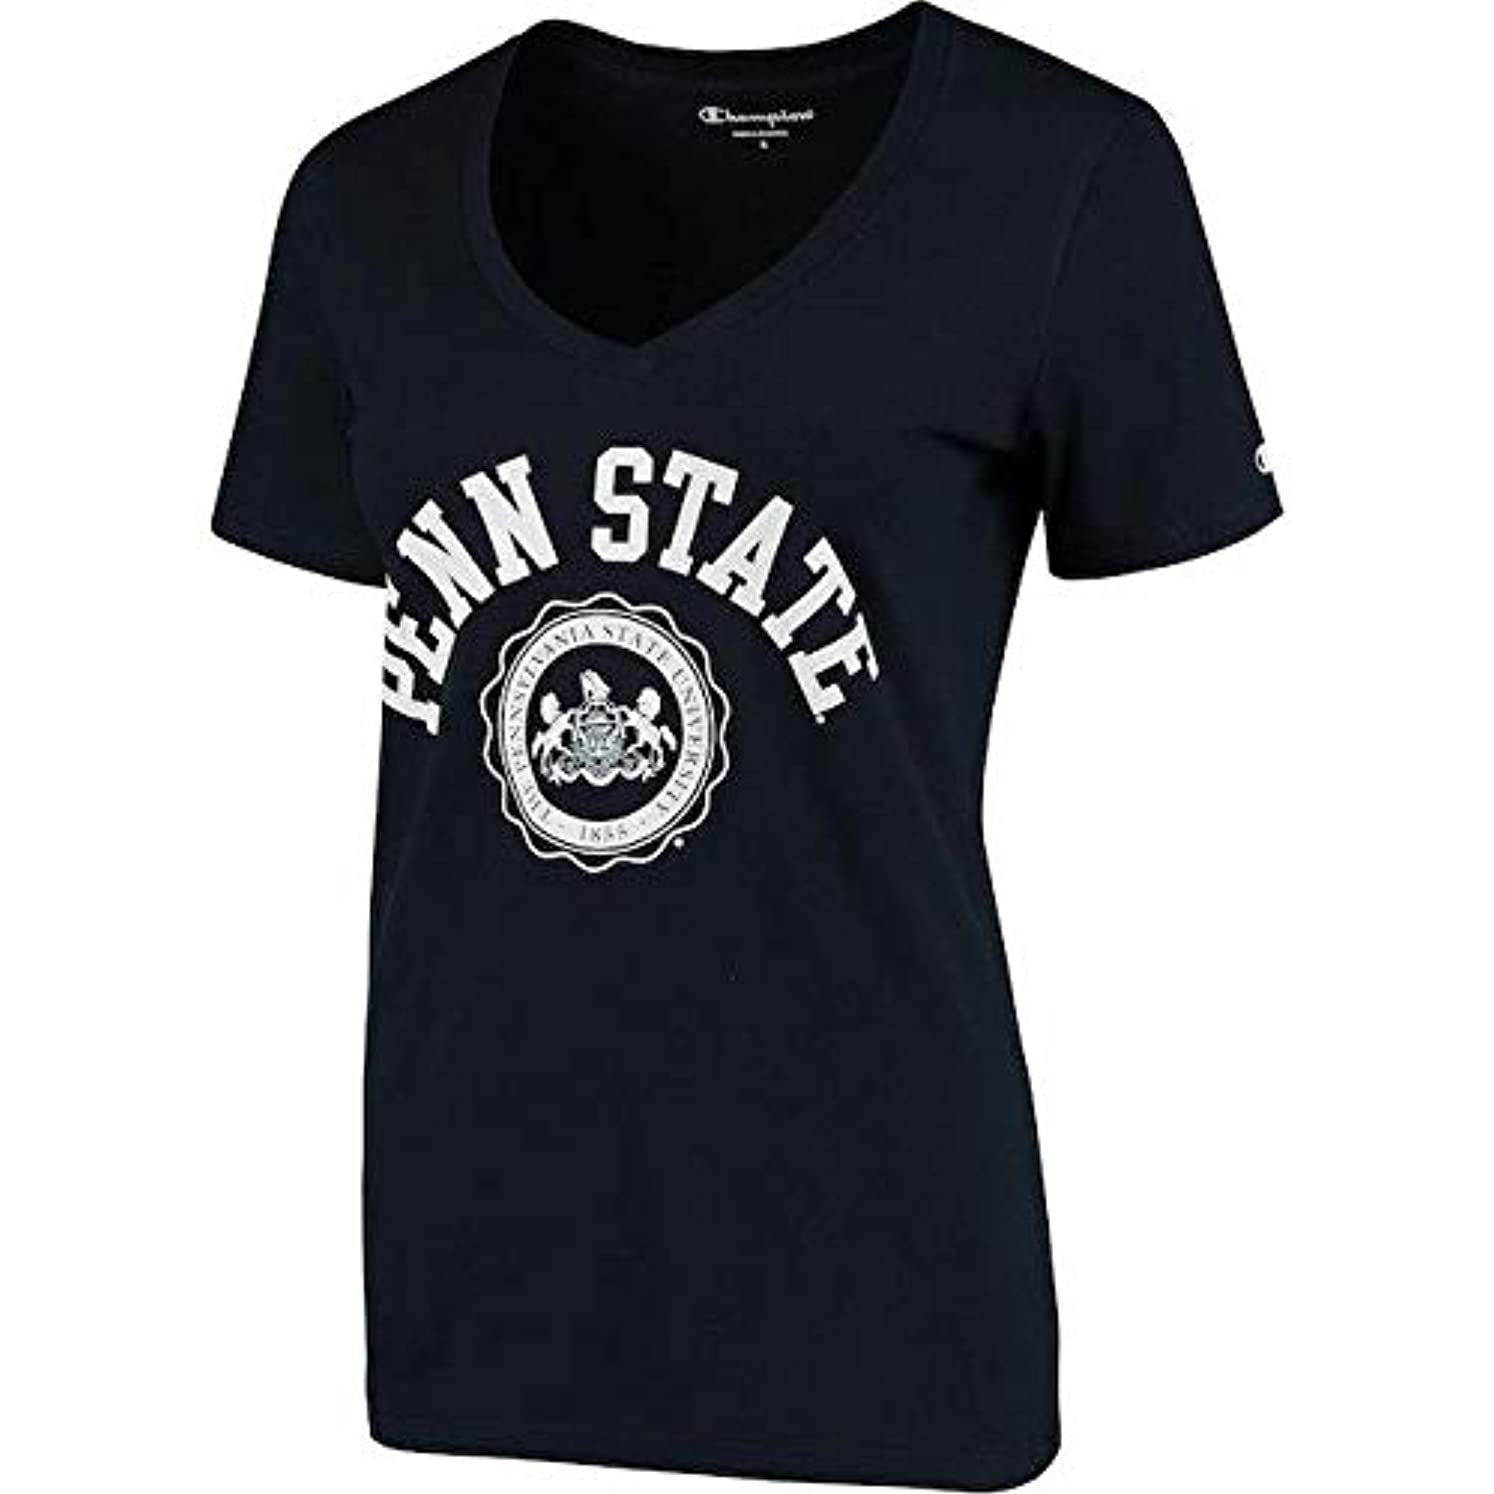 機会有害仕様Champion Champion Penn State Nittany Lions Women's Navy College Seal V-Neck T-Shirt スポーツ用品 【並行輸入品】